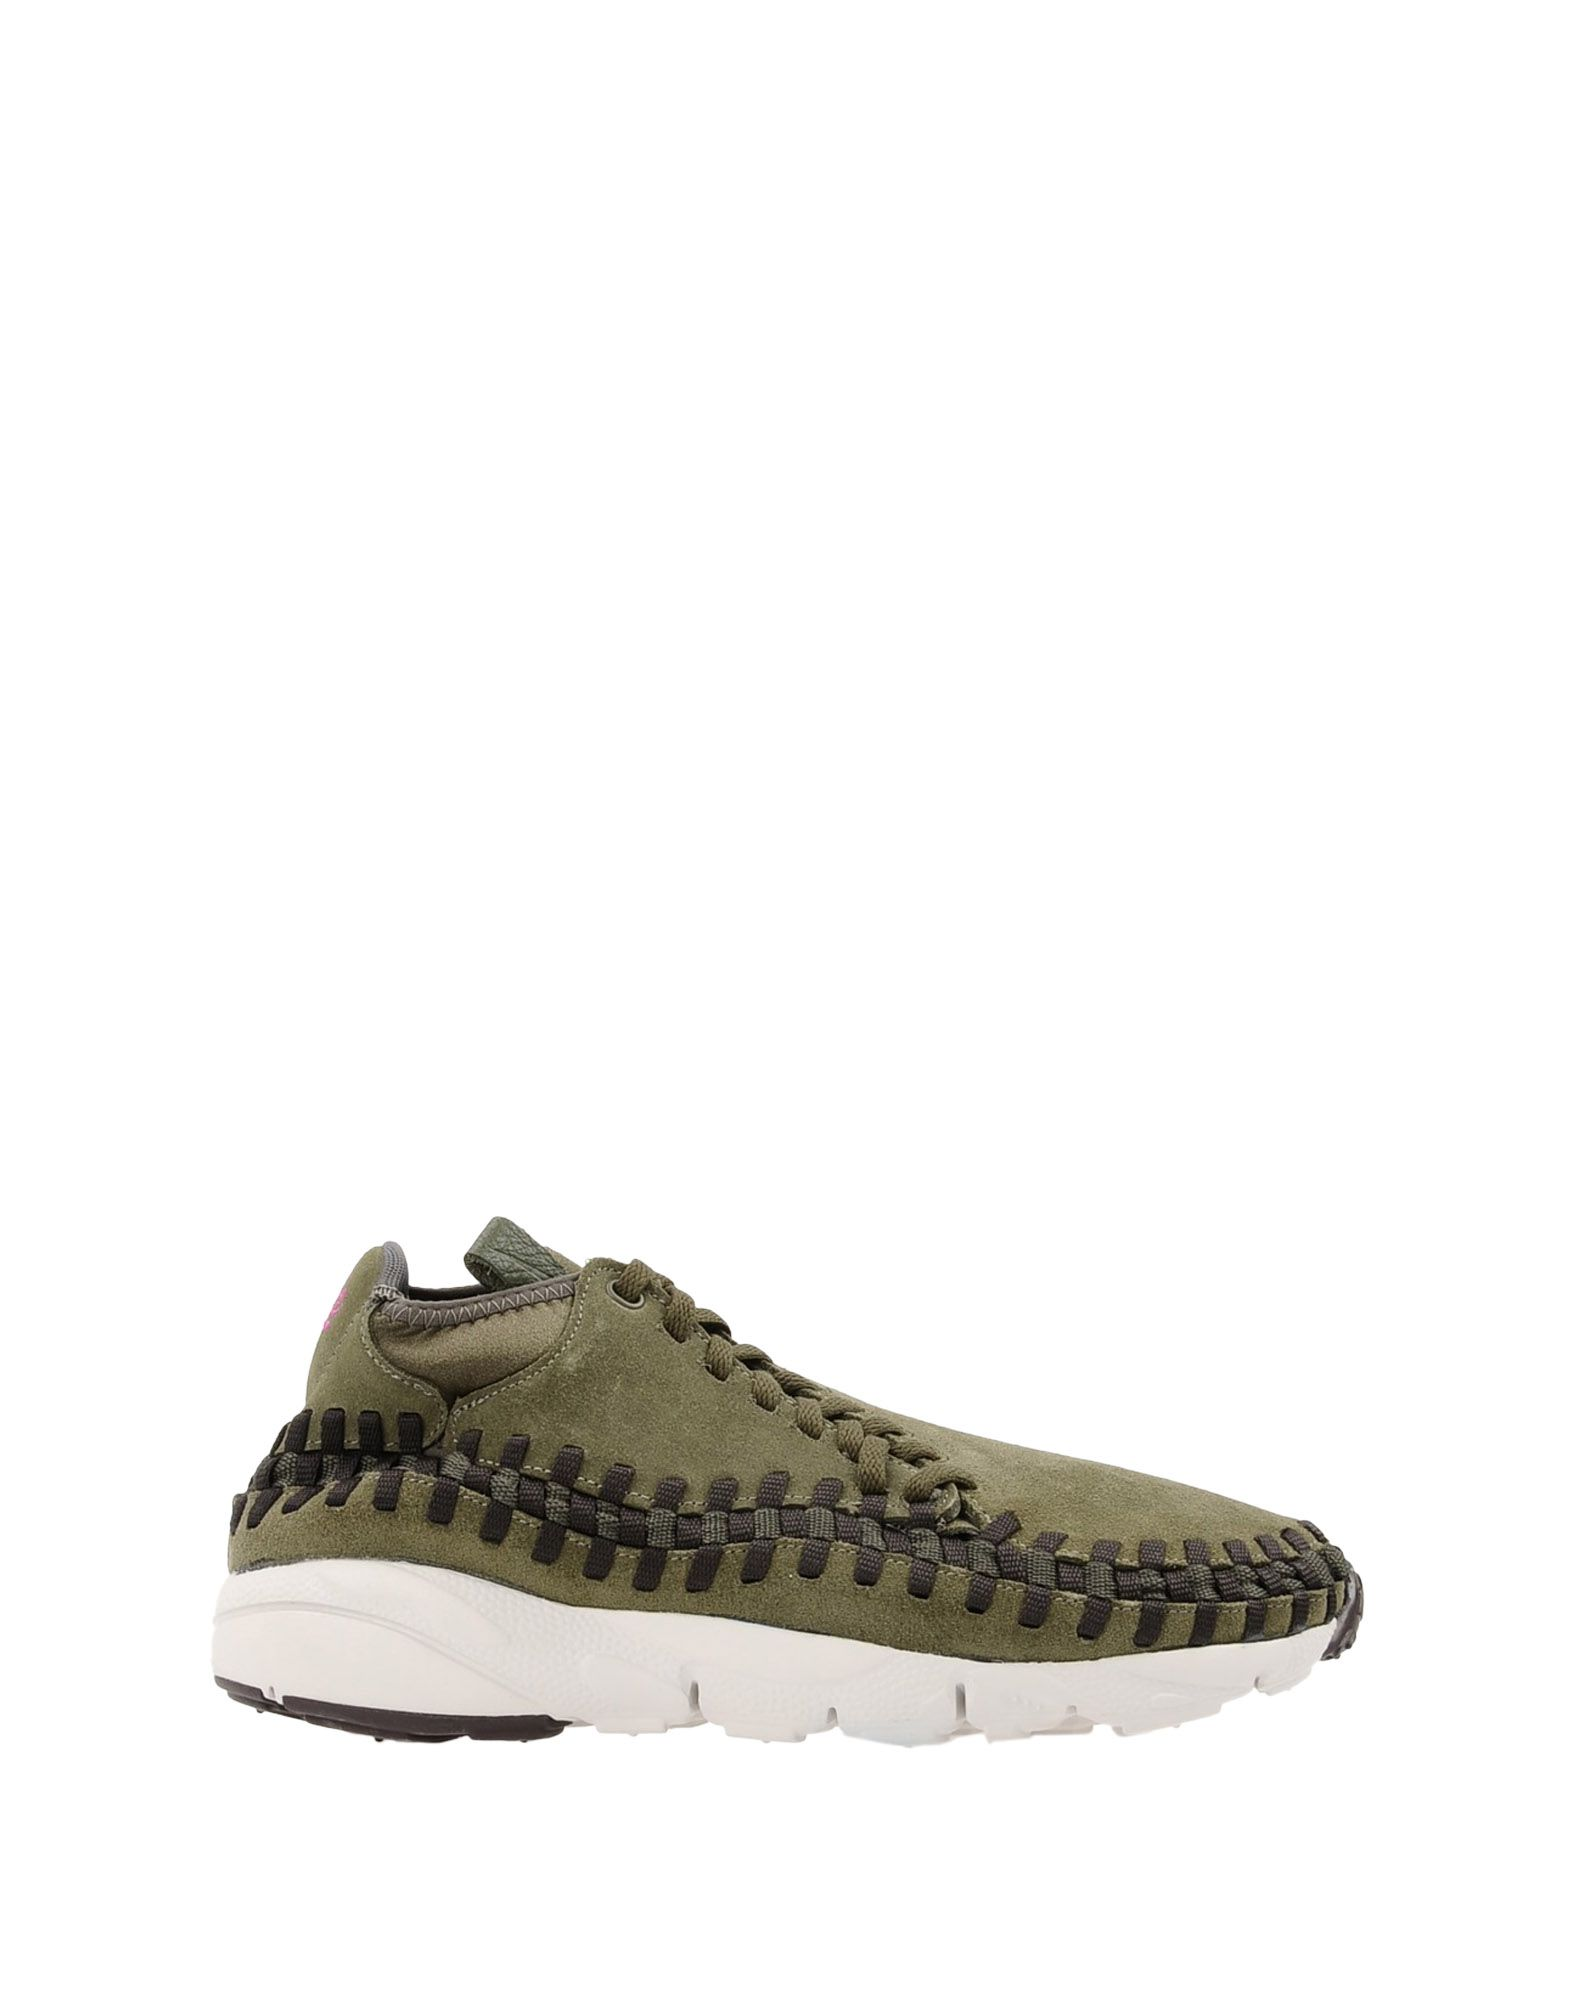 Sneakers Nike Air Footscape Woven Chukka - Homme - Sneakers Nike sur